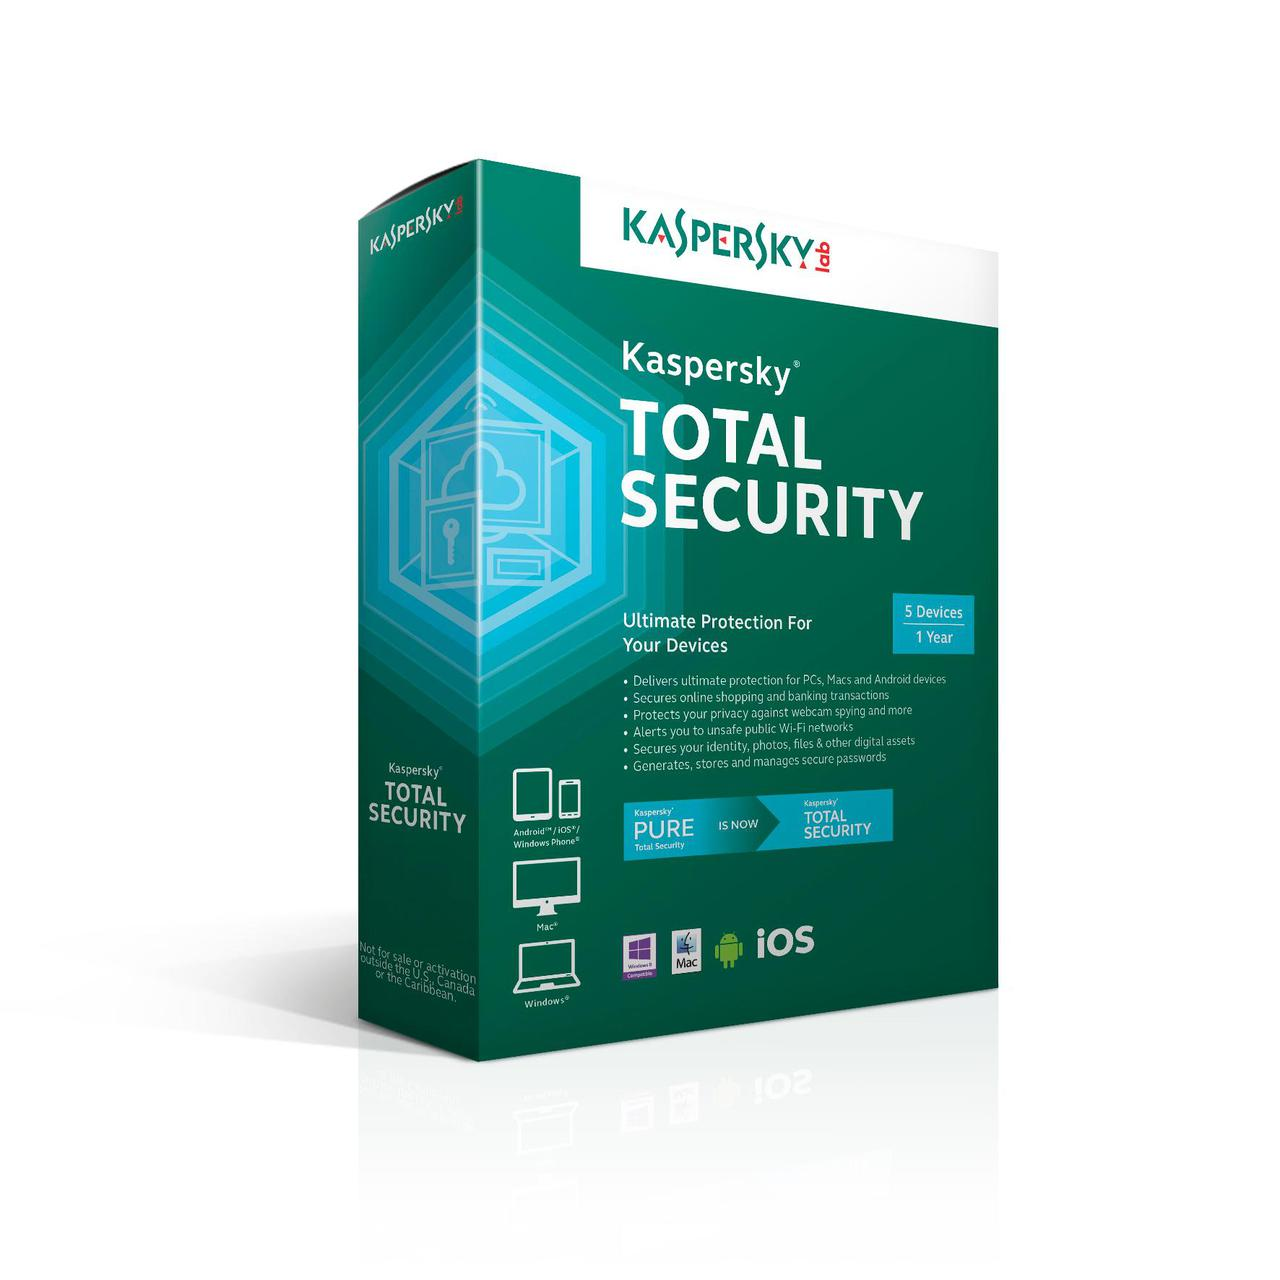 Kaspersky Total Security Продление (Renewal) 1 год